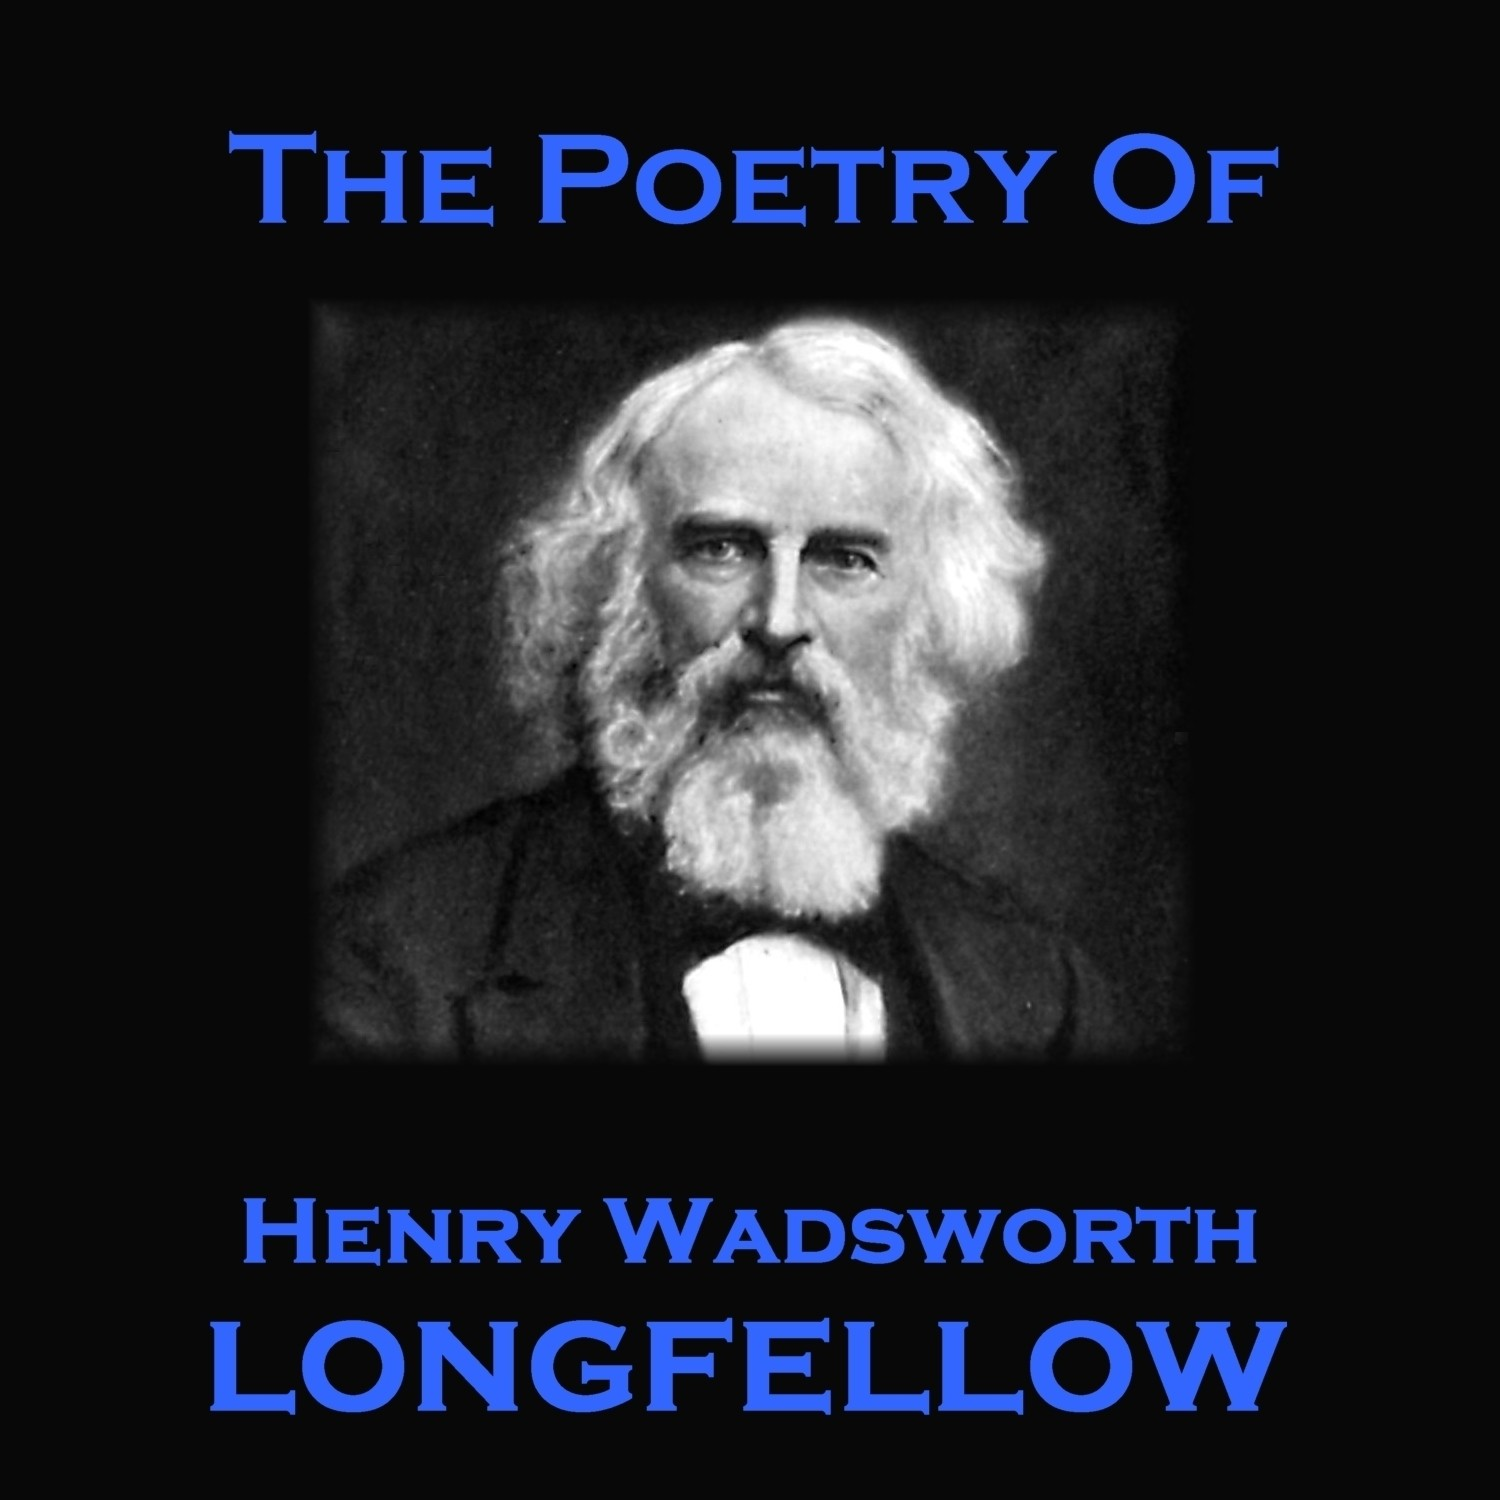 thesis statement for henry wadsworth longfellow